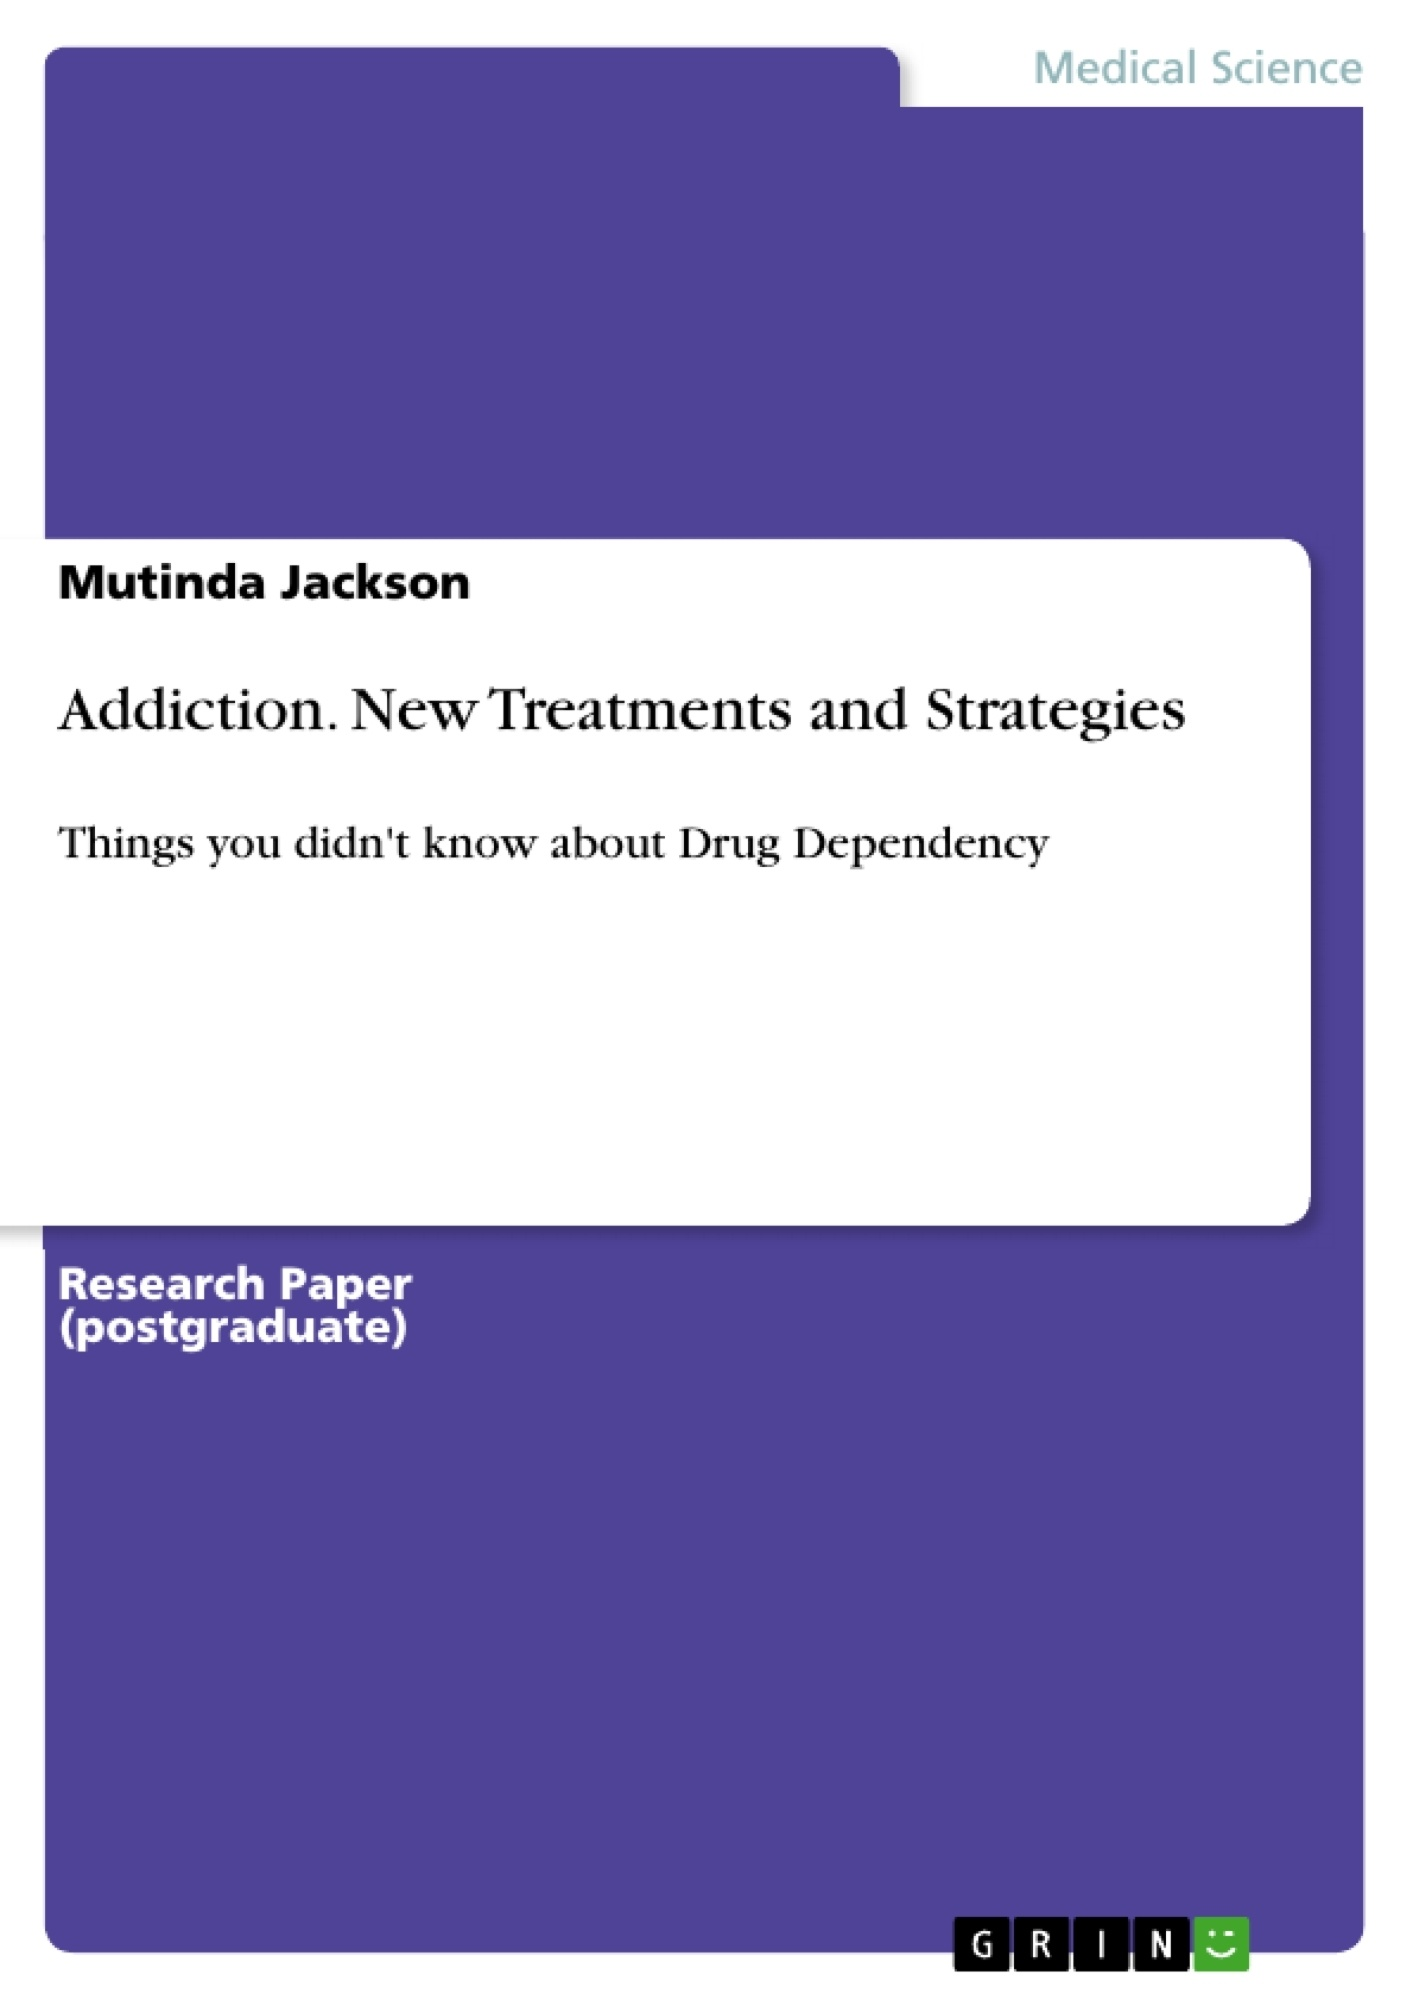 Title: Addiction. New Treatments and Strategies